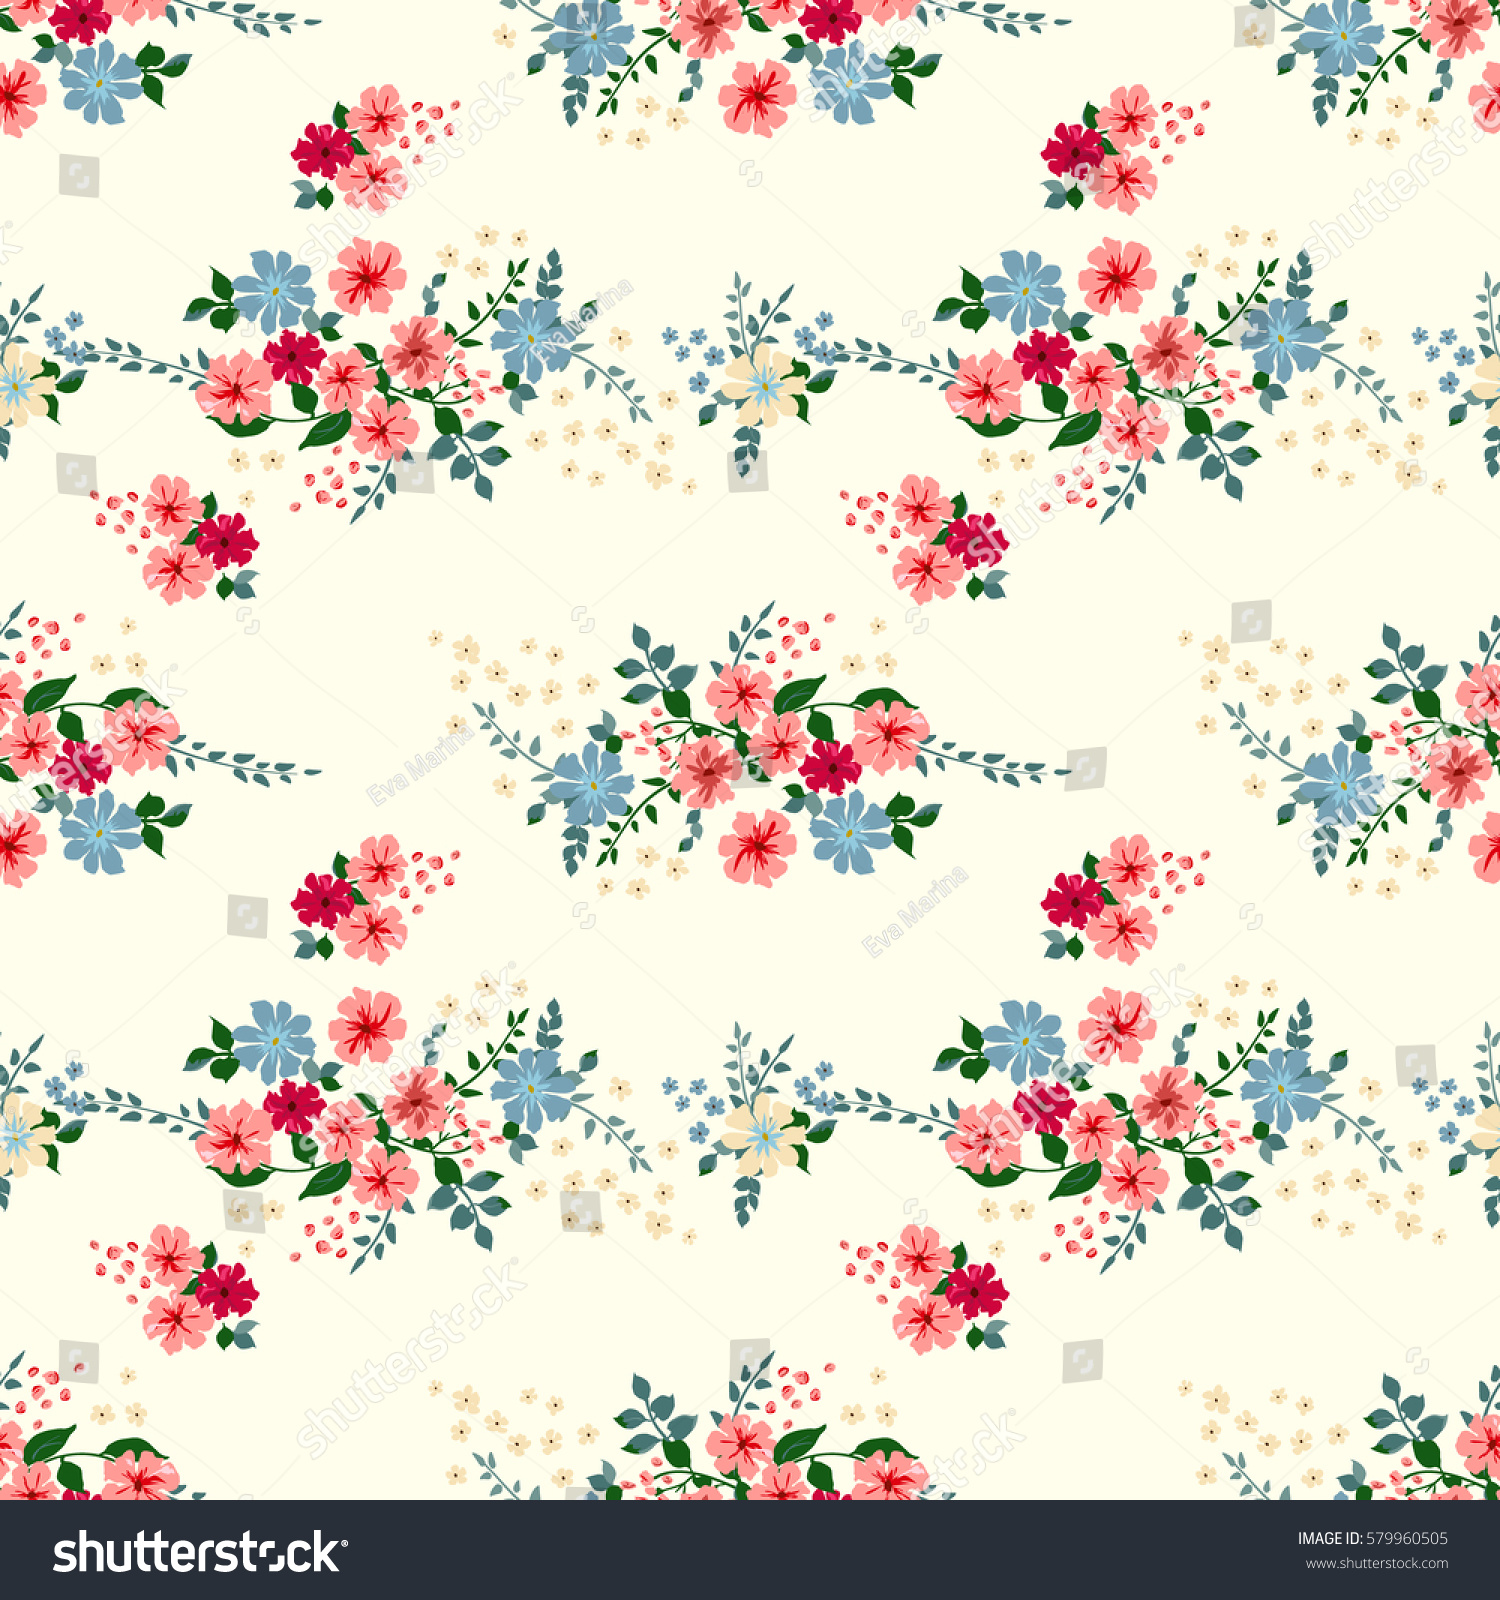 Cute Book Cover Background : Seamless cute pattern small flowers floral stock vector